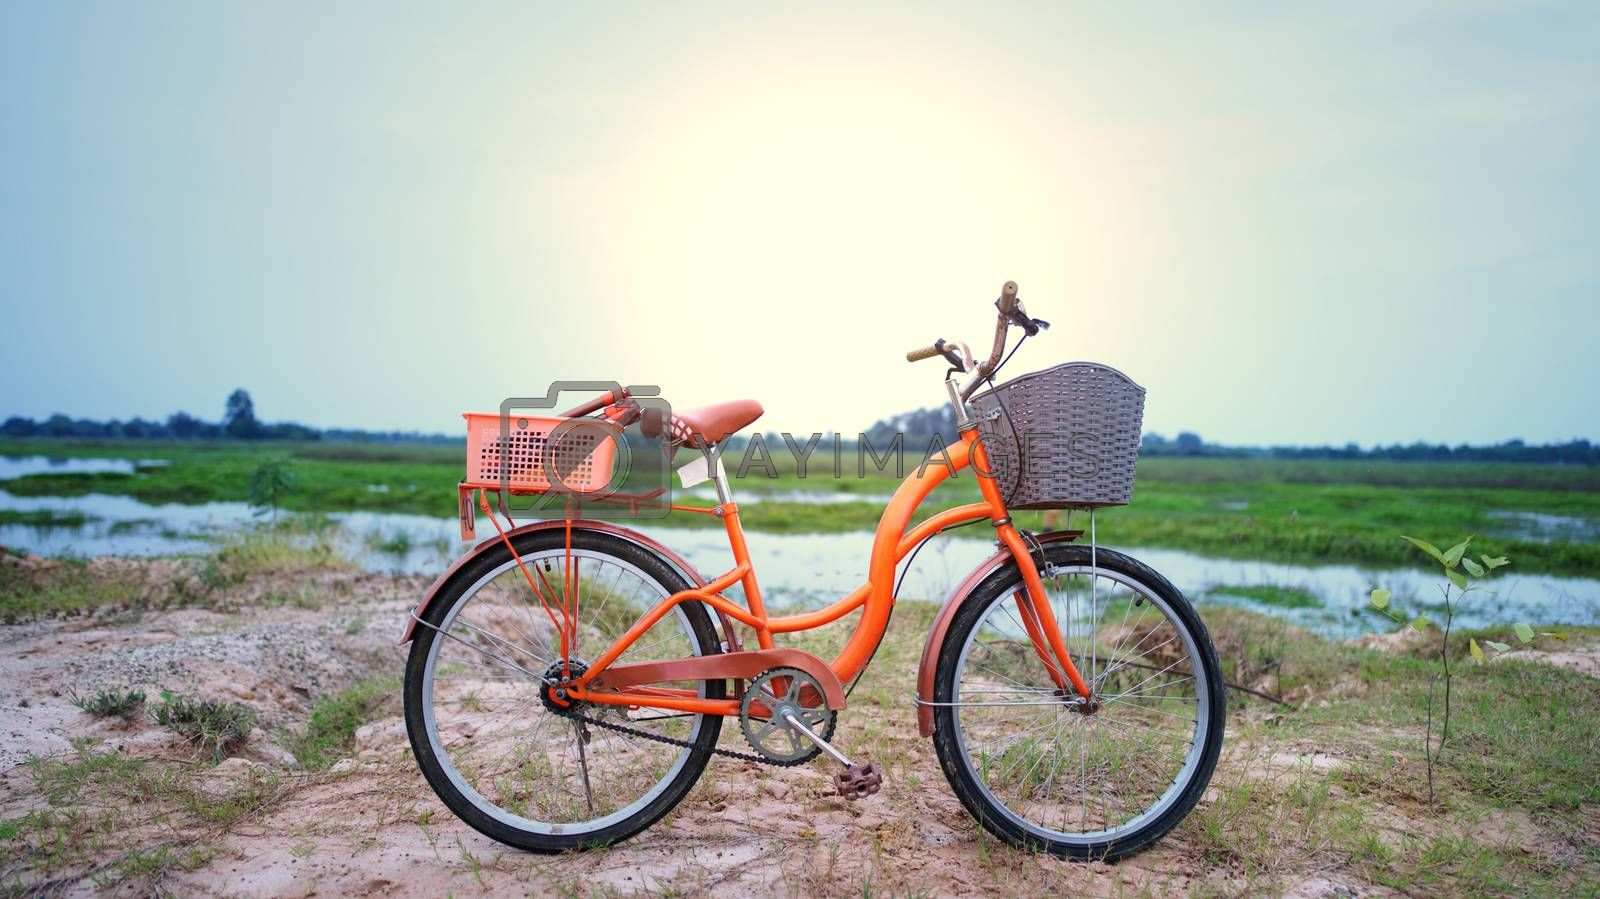 Royalty free image of An orange retro-style bicycle with a basket for luggage, parked by noppha80